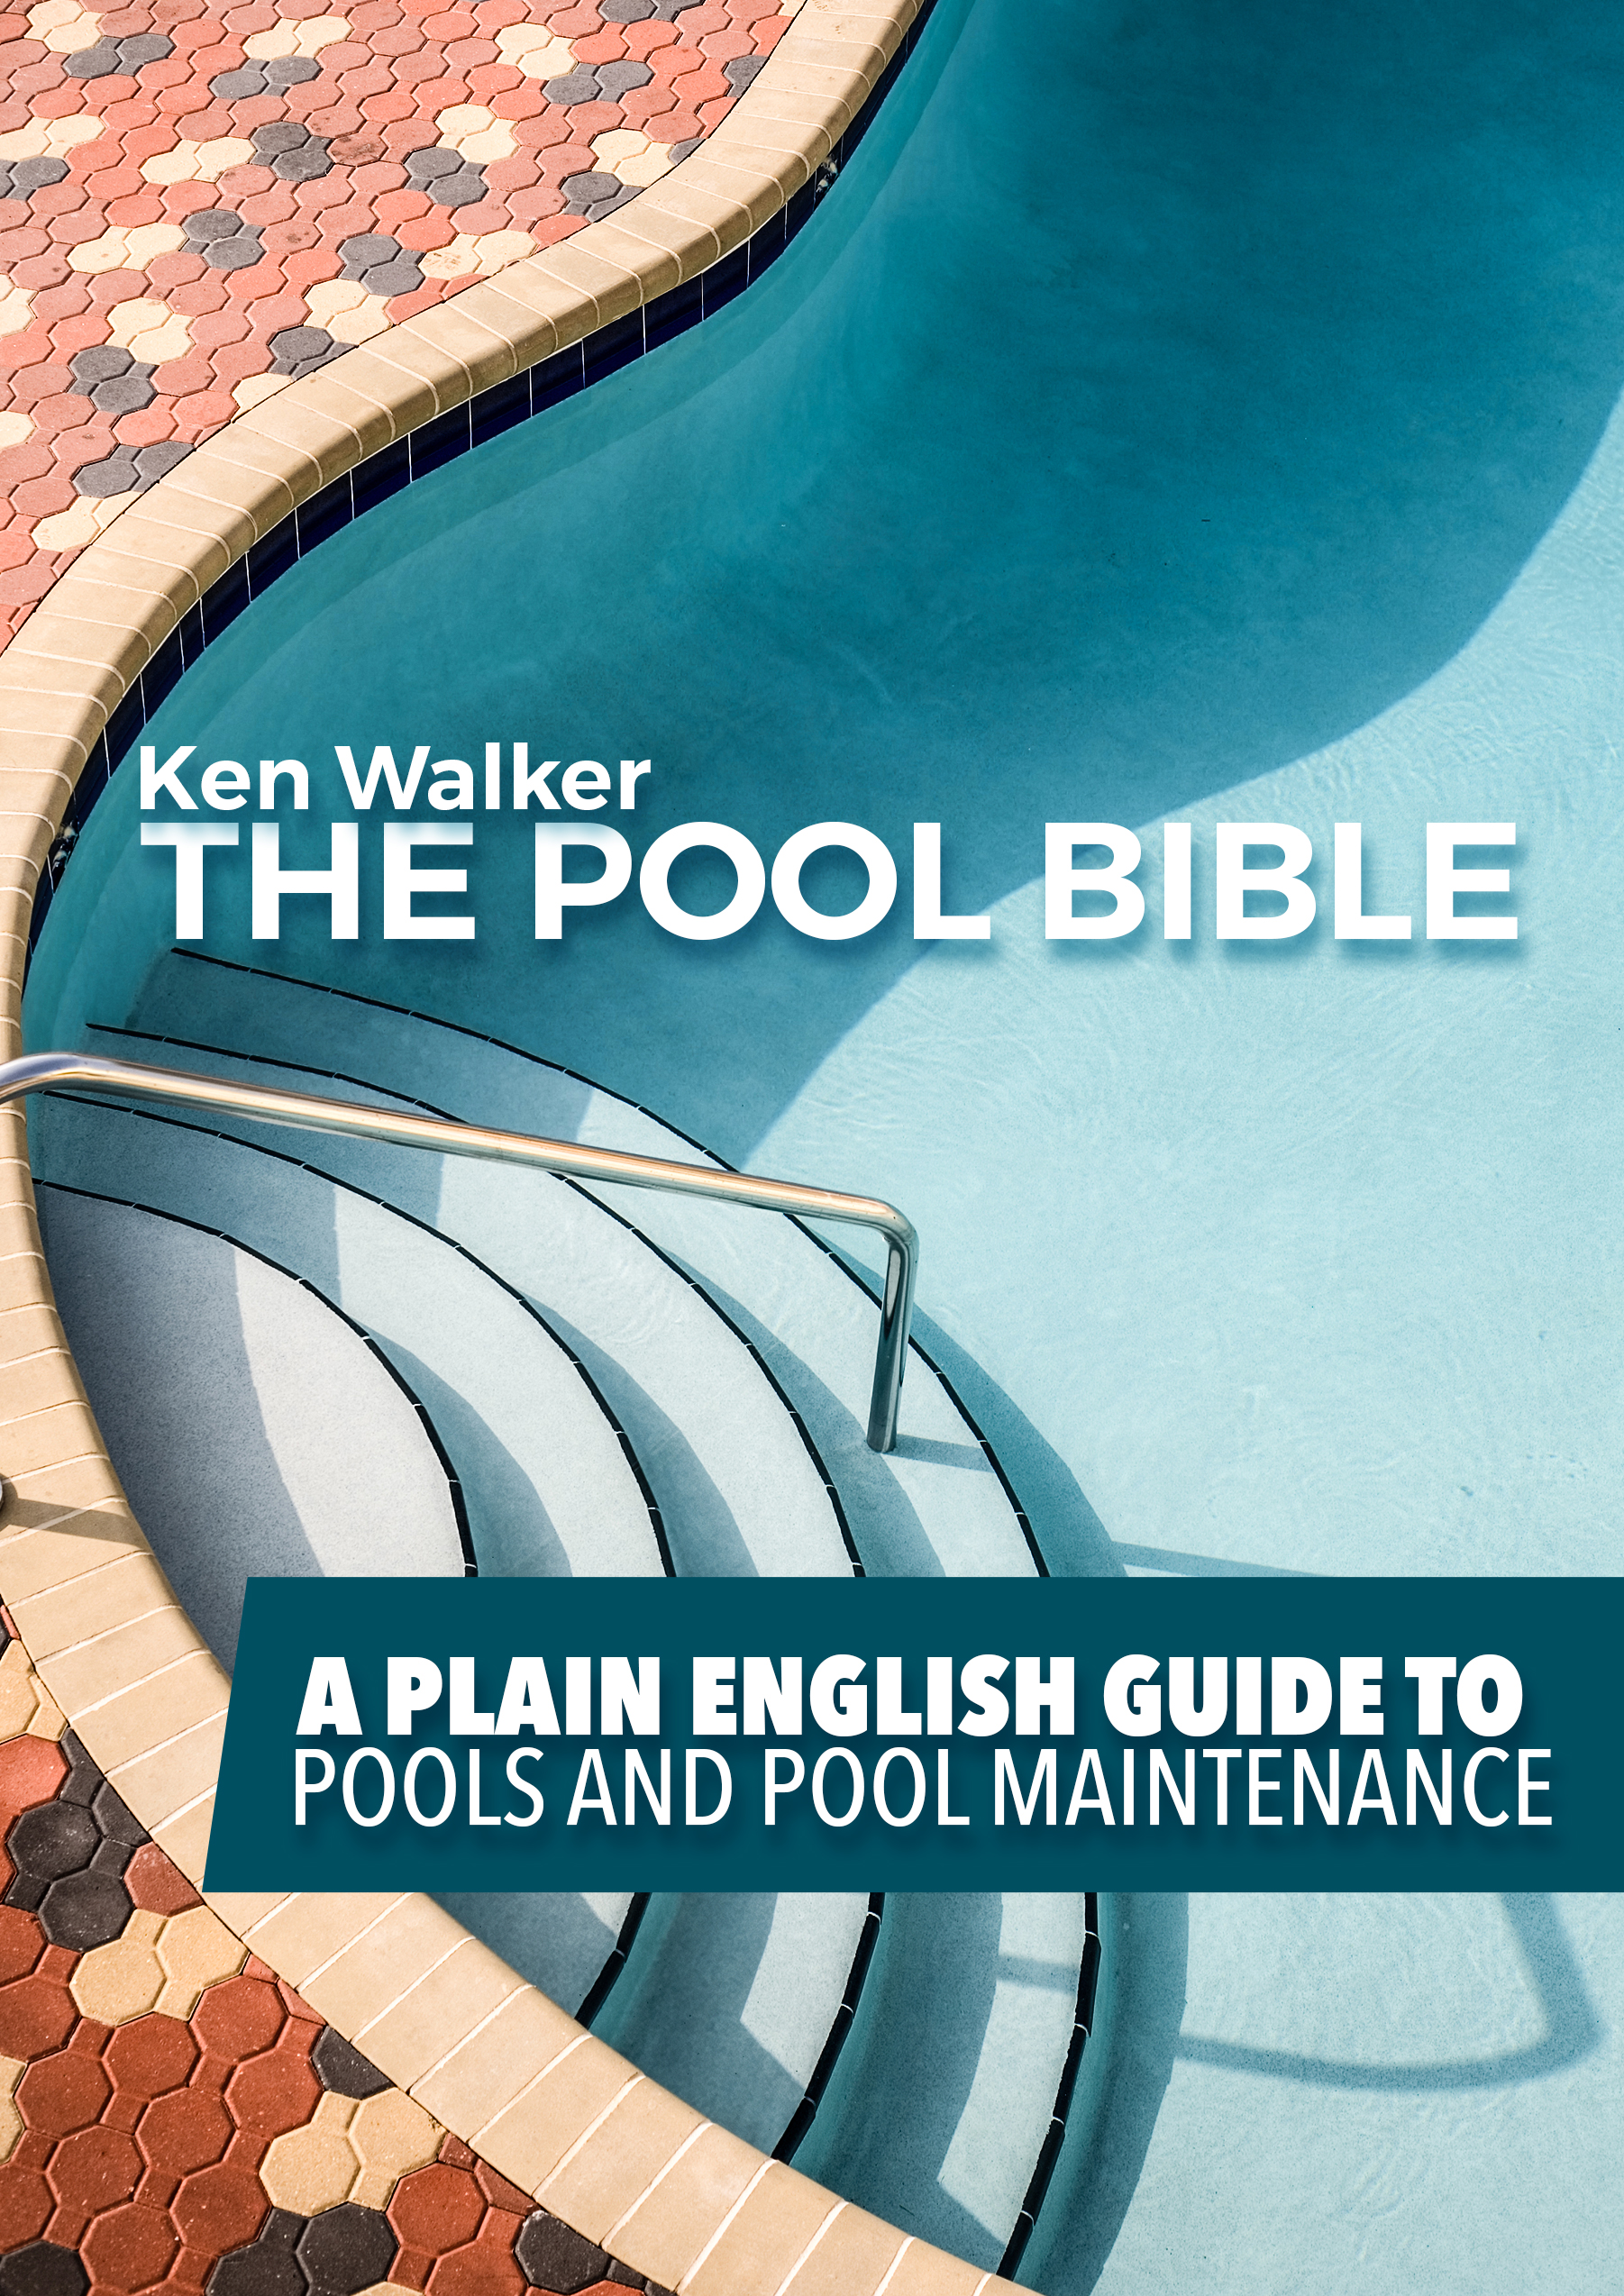 Pool-Bible-Cover.jpg - 3.43 MB